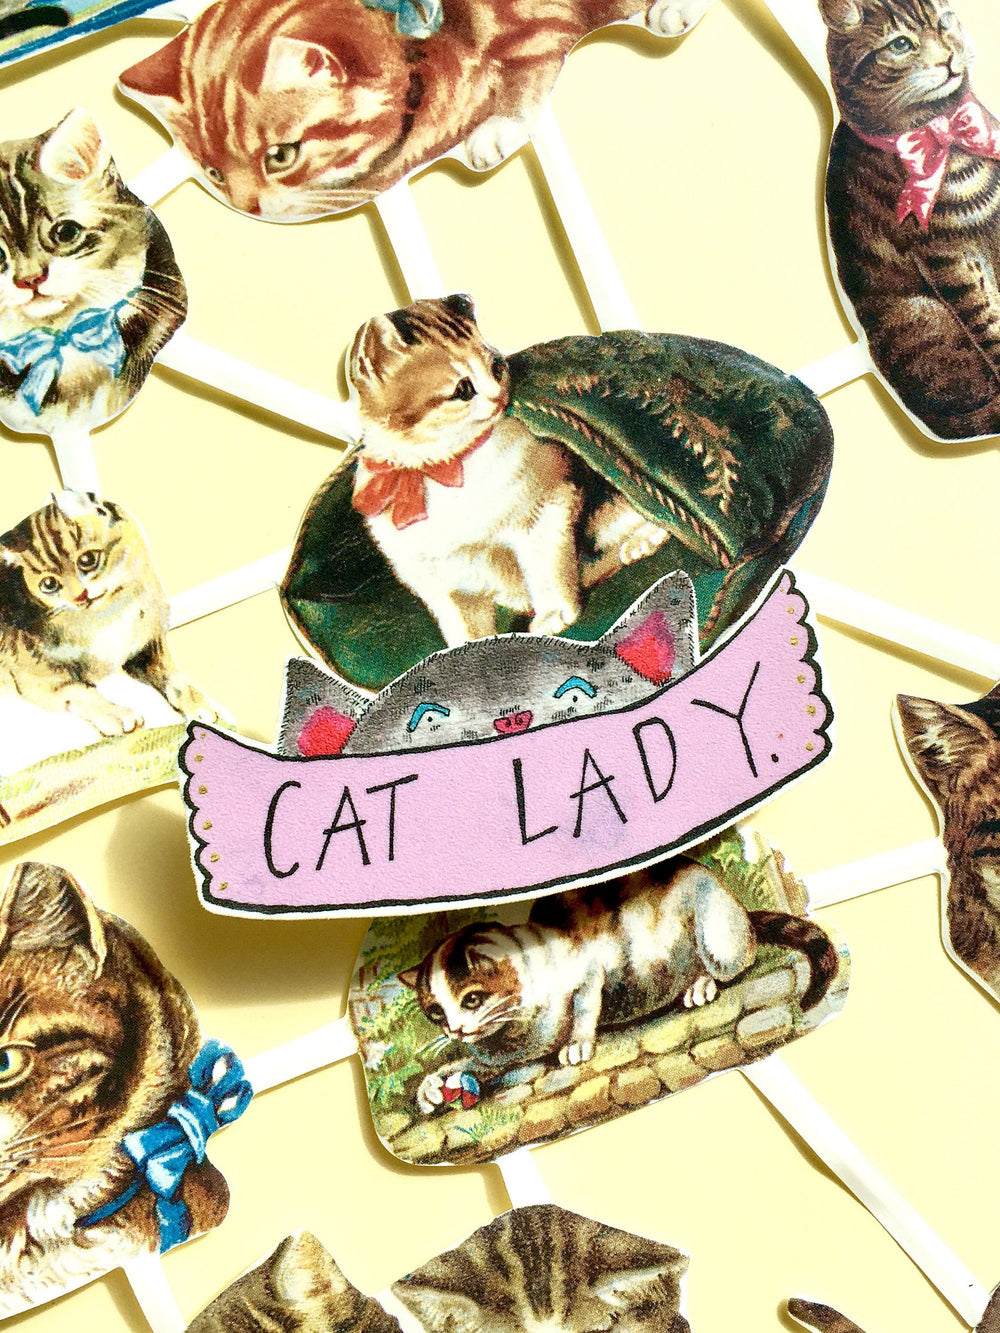 Cat Lady Illustrated Brooch, Quirky Cute Cat Handmade Jewellery, Brooch with Plastic Charm, Cat Illustration, Cat Pin Badge